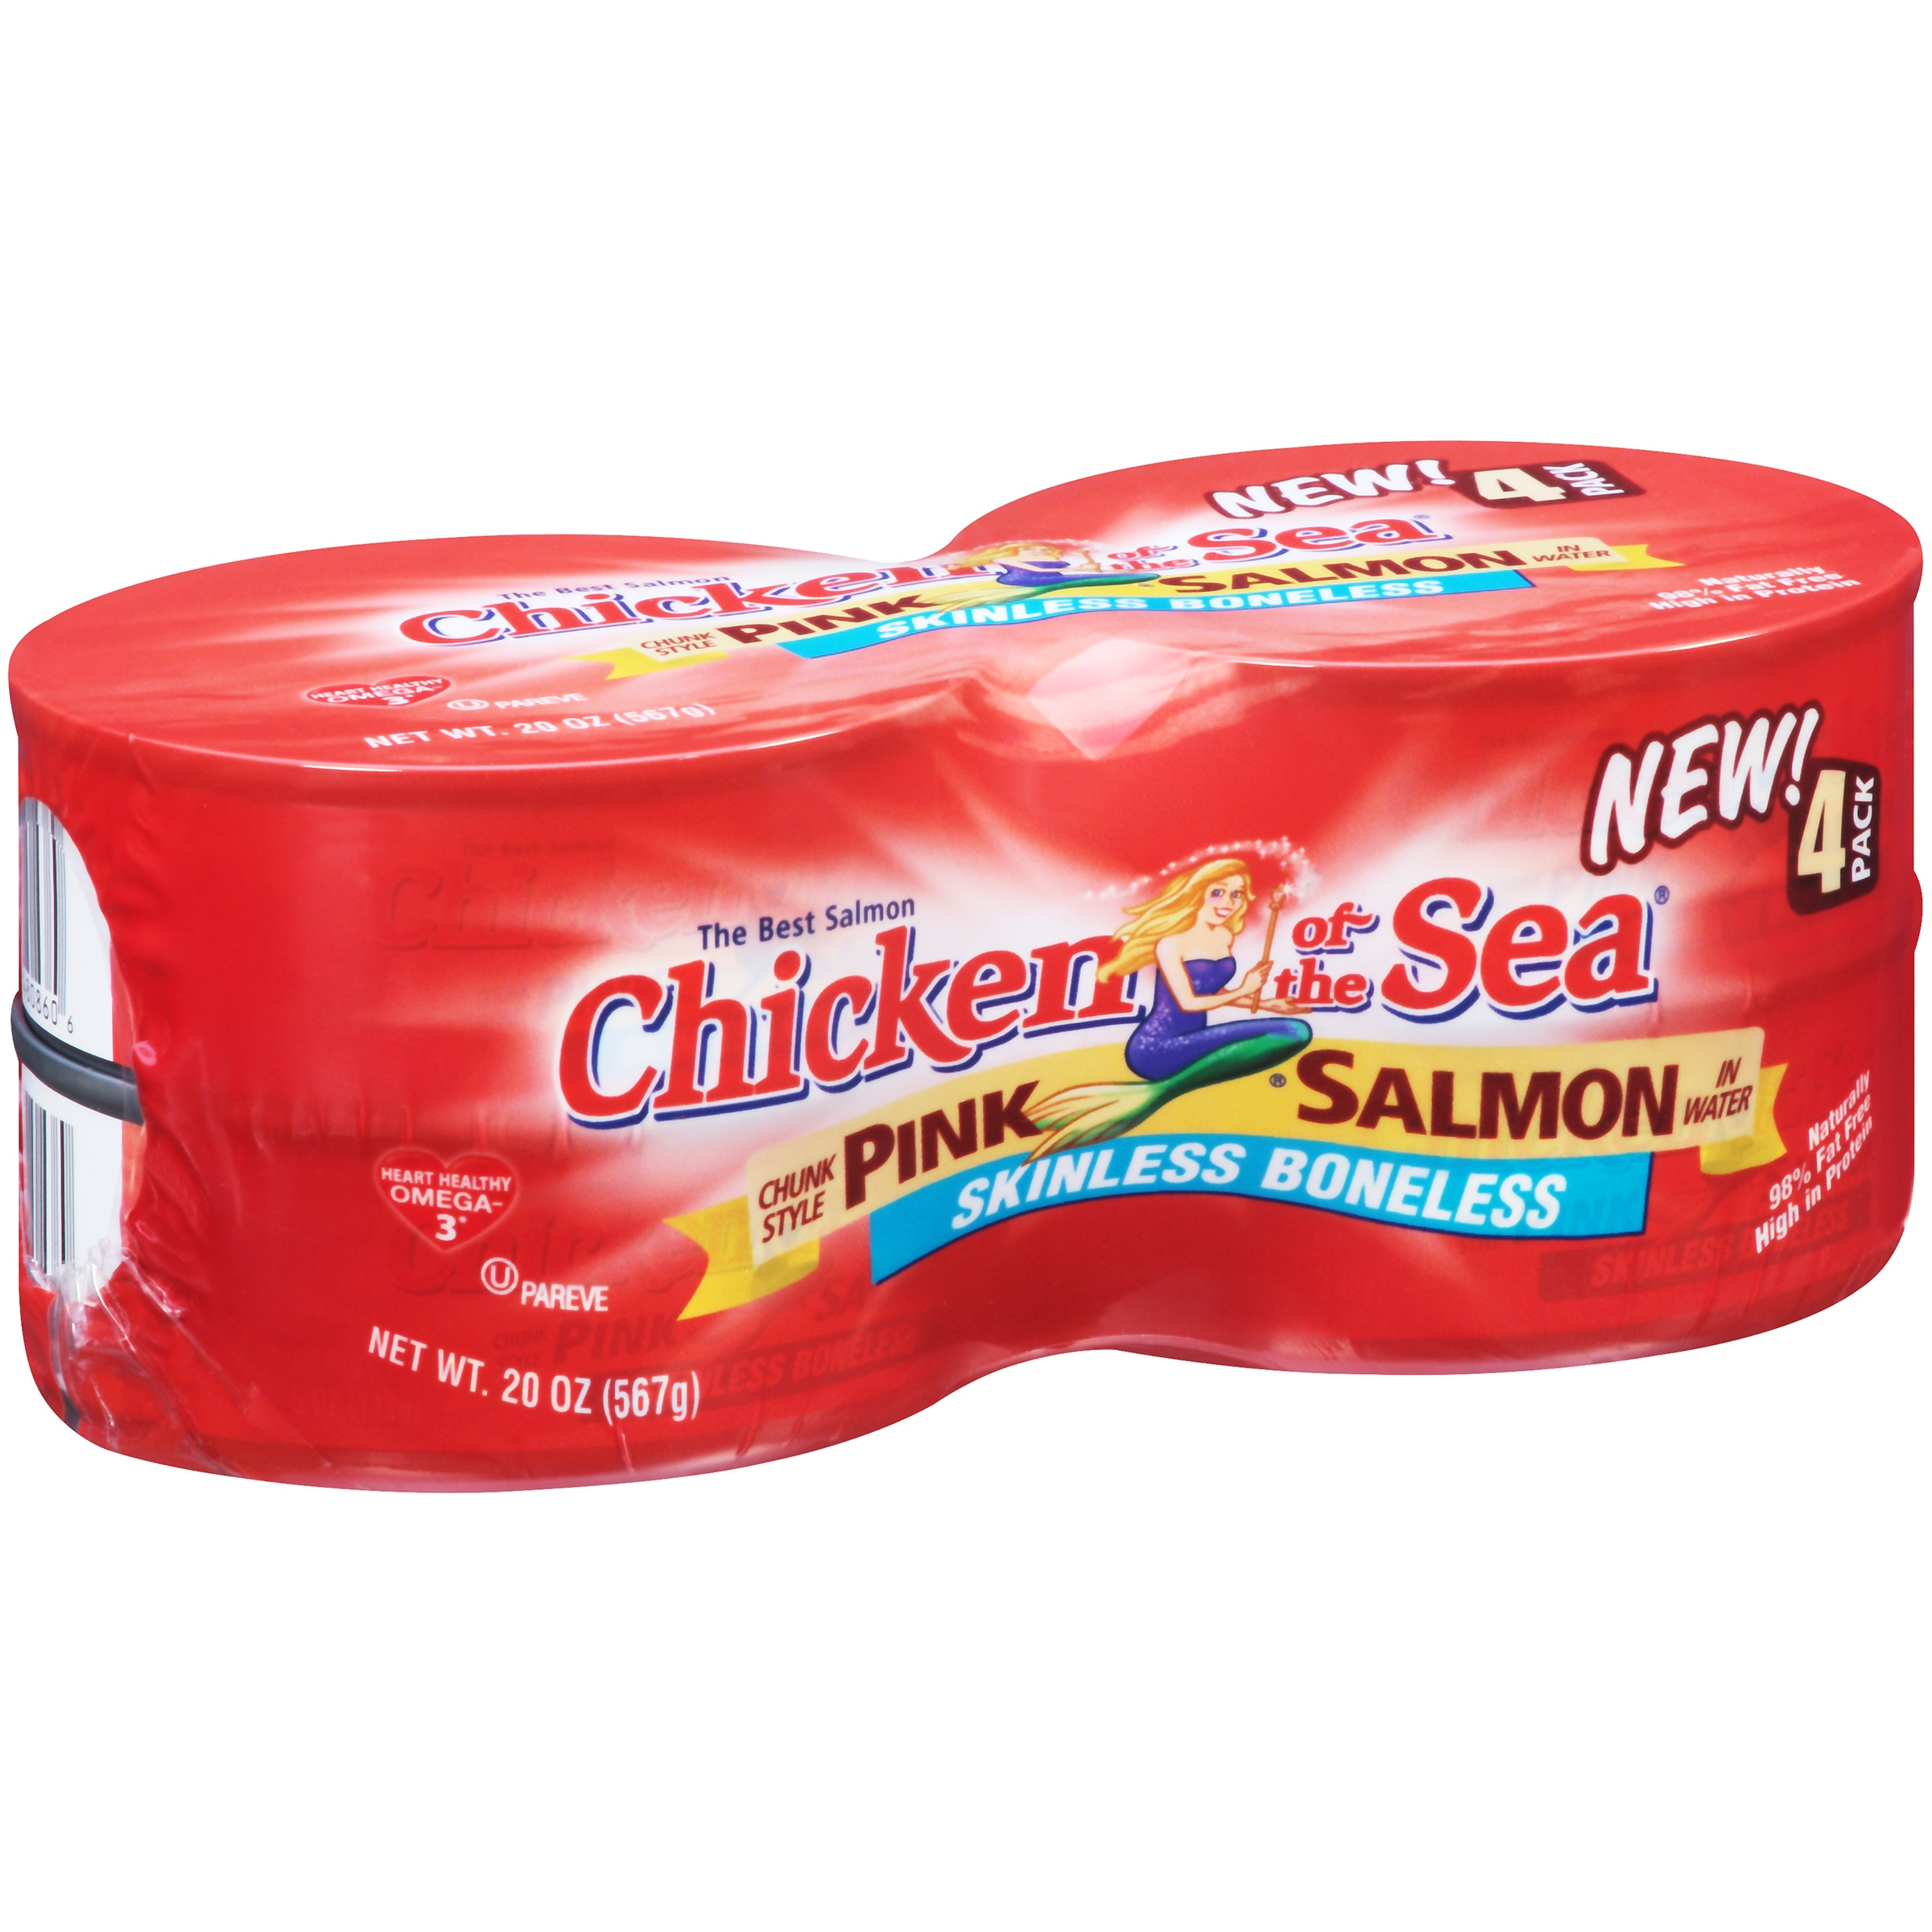 Chicken of the Sea Skinless Boneless Chunk Style Pink Salmon in Water, 5 oz, 4 ct by Chicken of The Sea International